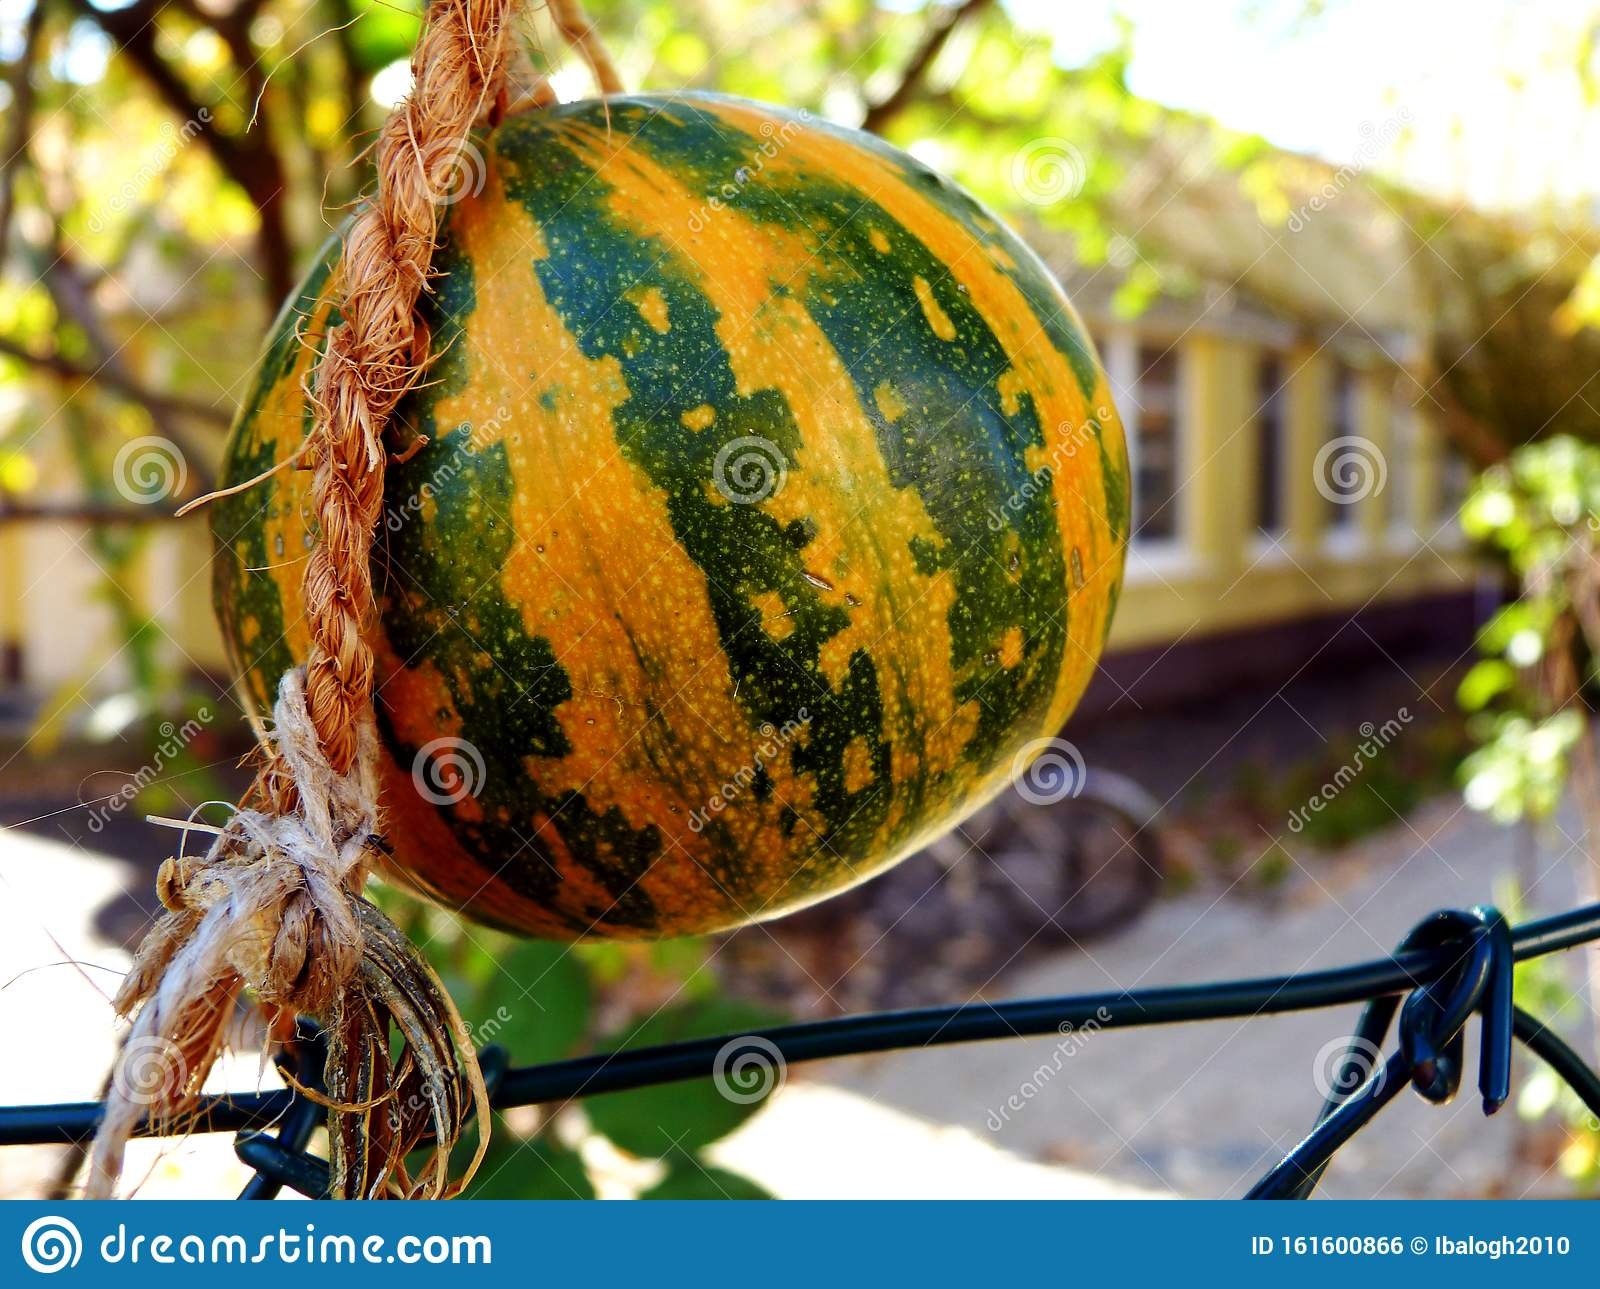 Picture of: Decorative Yellow Green Gourd In Exterior Space Along Chain Link Fence Stock Photo Image Of Jute Gourd 161600866